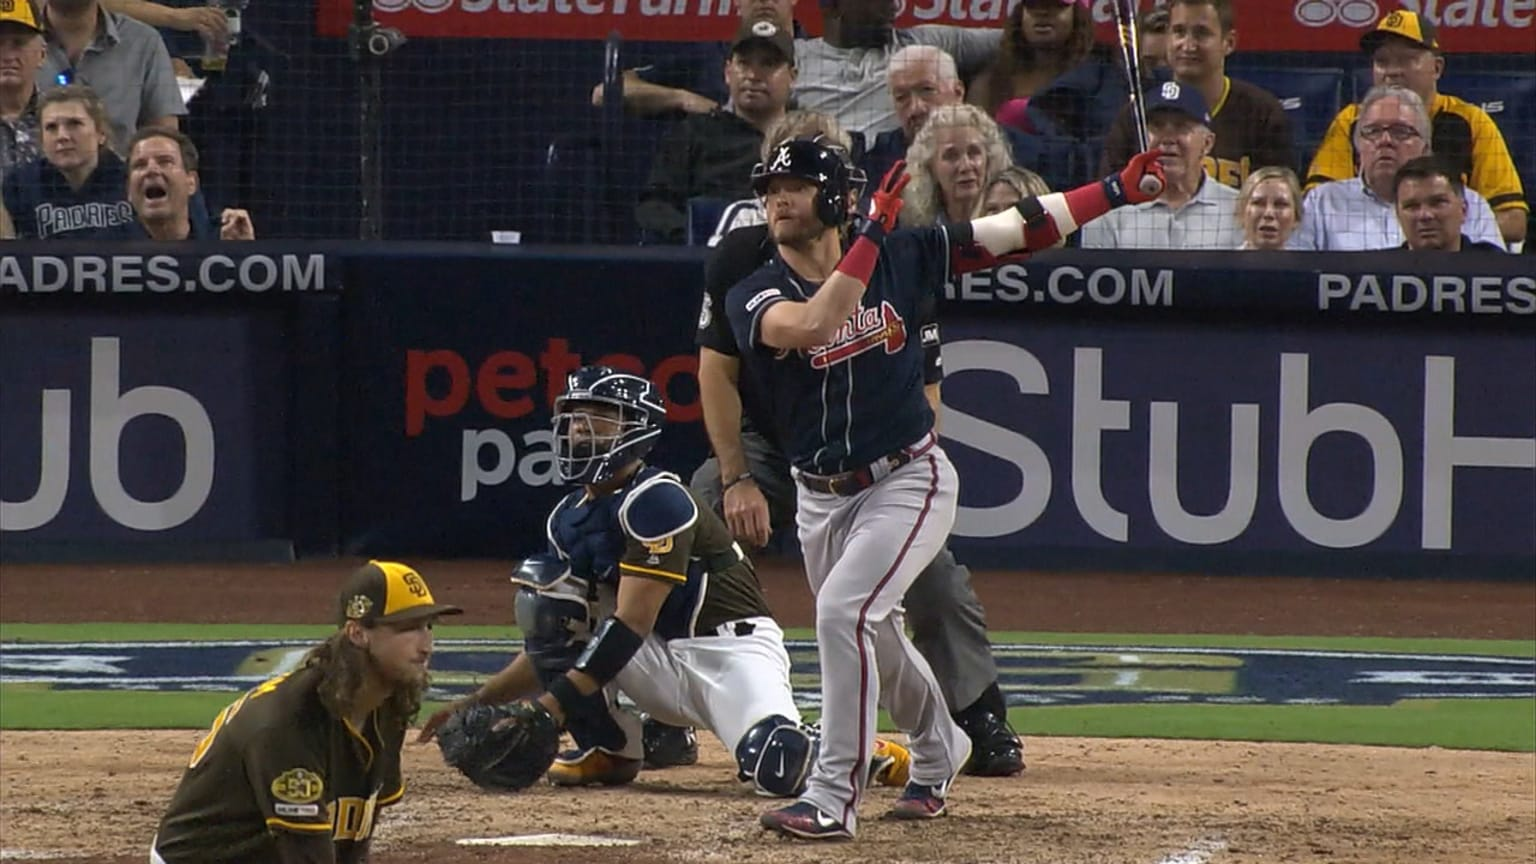 Donaldson's 2nd HR of the game | 07/13/2019 | Atlanta Braves